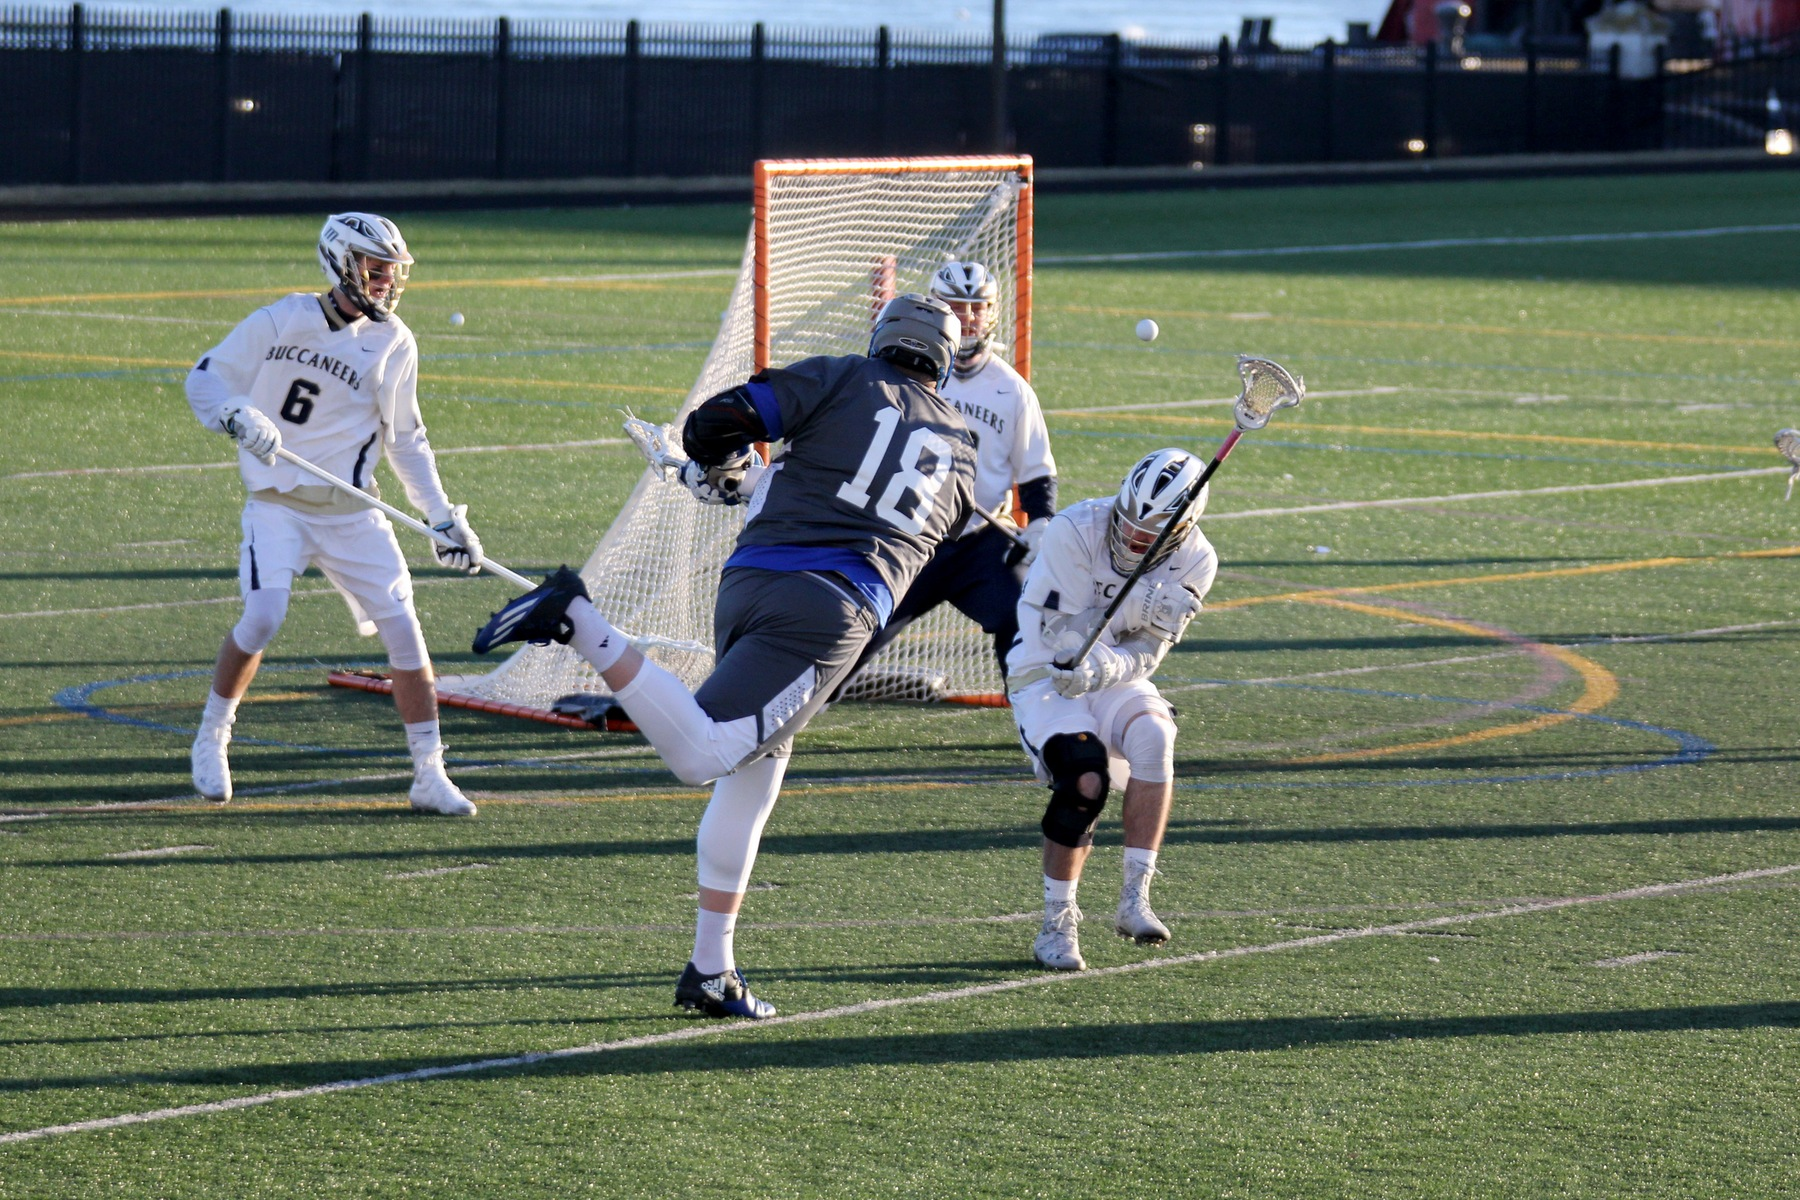 Men's Lacrosse Falls to Rivier in Season Finale